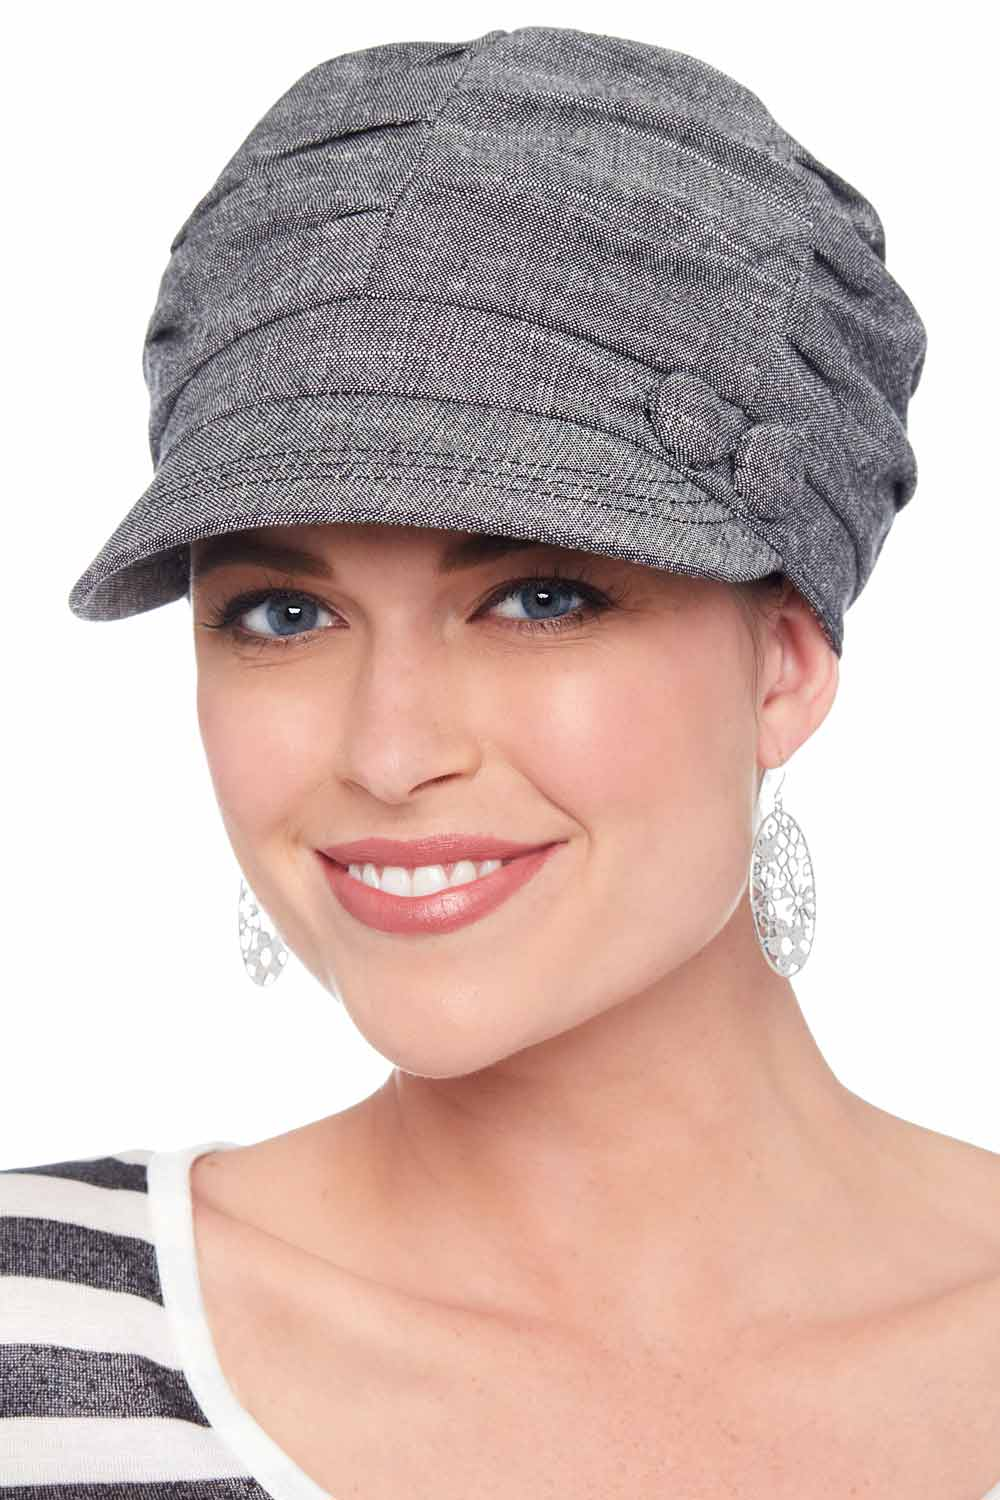 Gathered Button Newsboy Hats for Cancer Patients b1167142378d